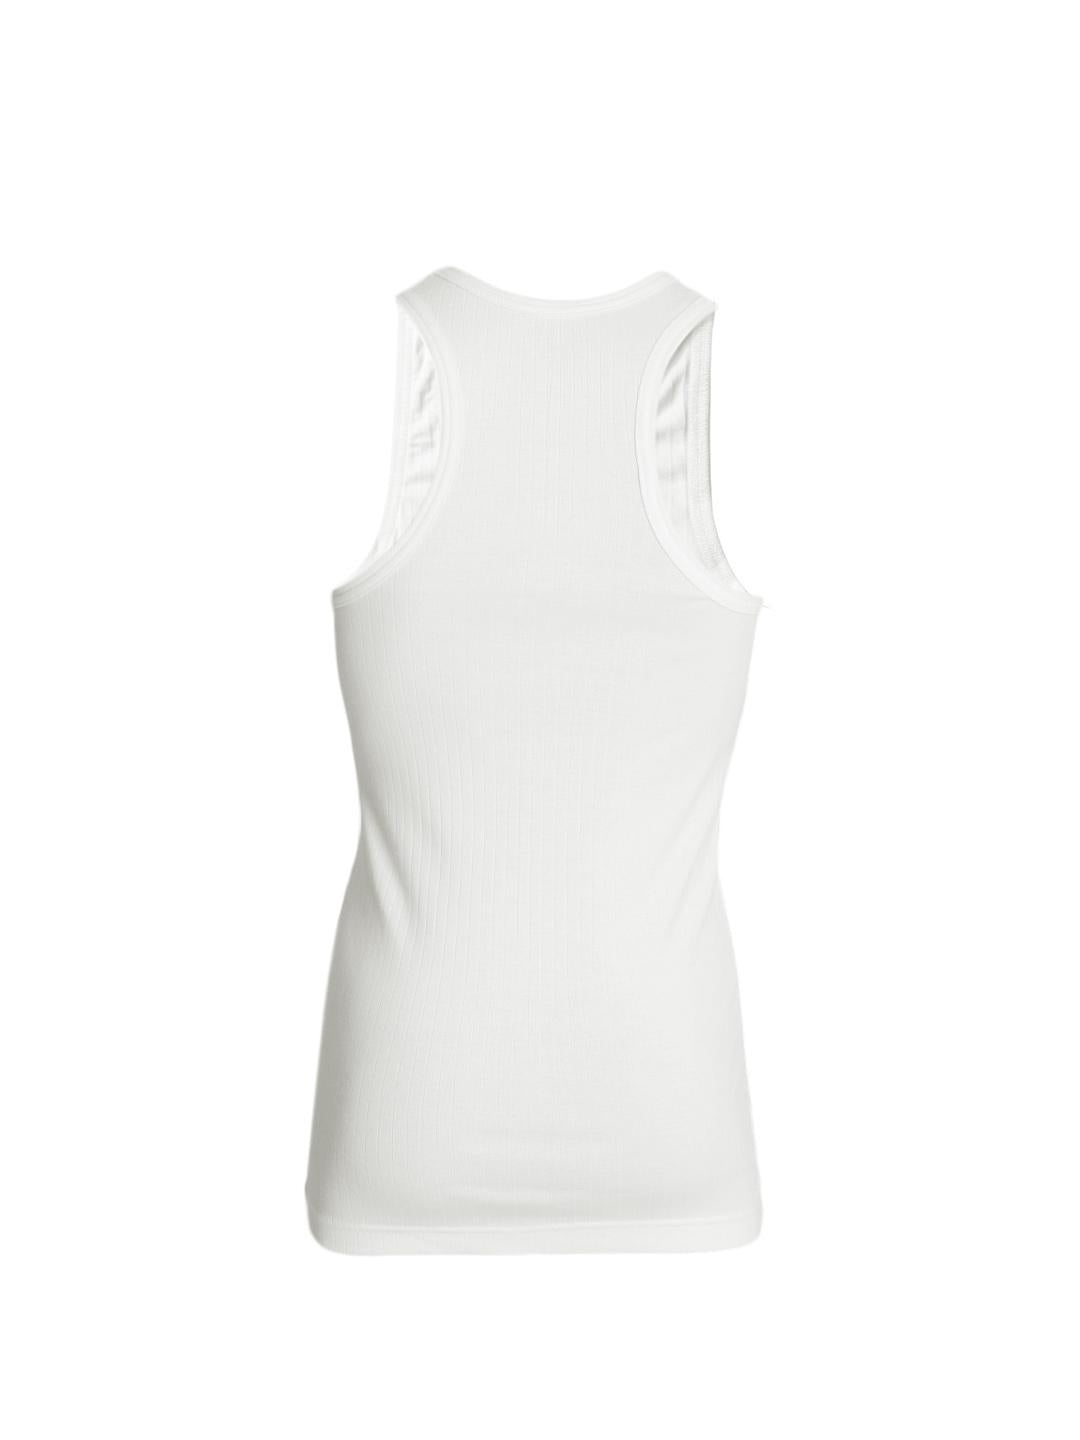 White Premium Quality Vest For Men